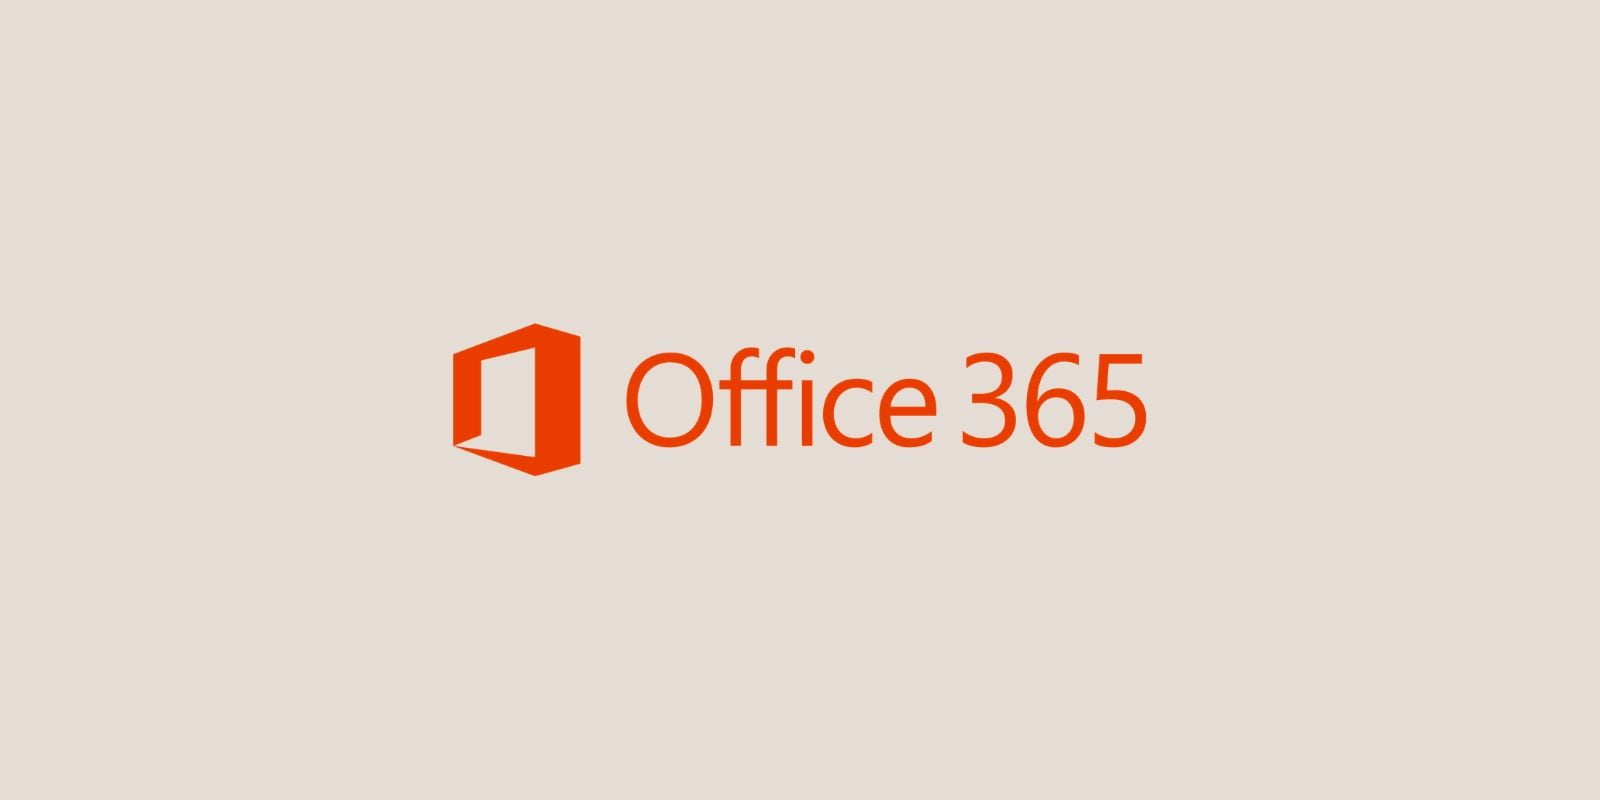 How to install Office 365